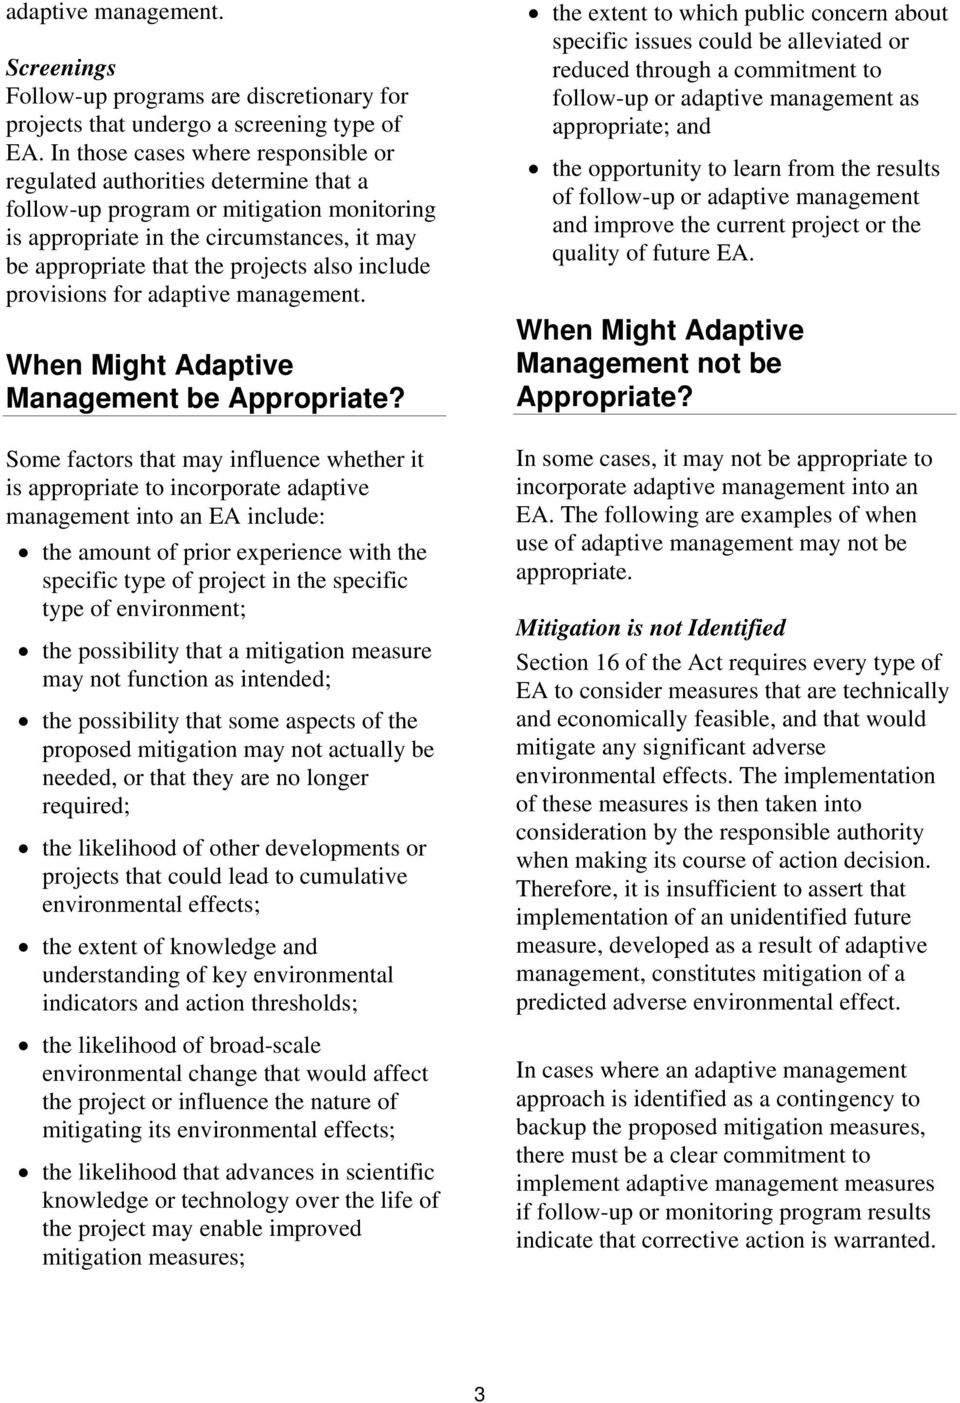 include provisions for adaptive management. When Might Adaptive Management be Appropriate?